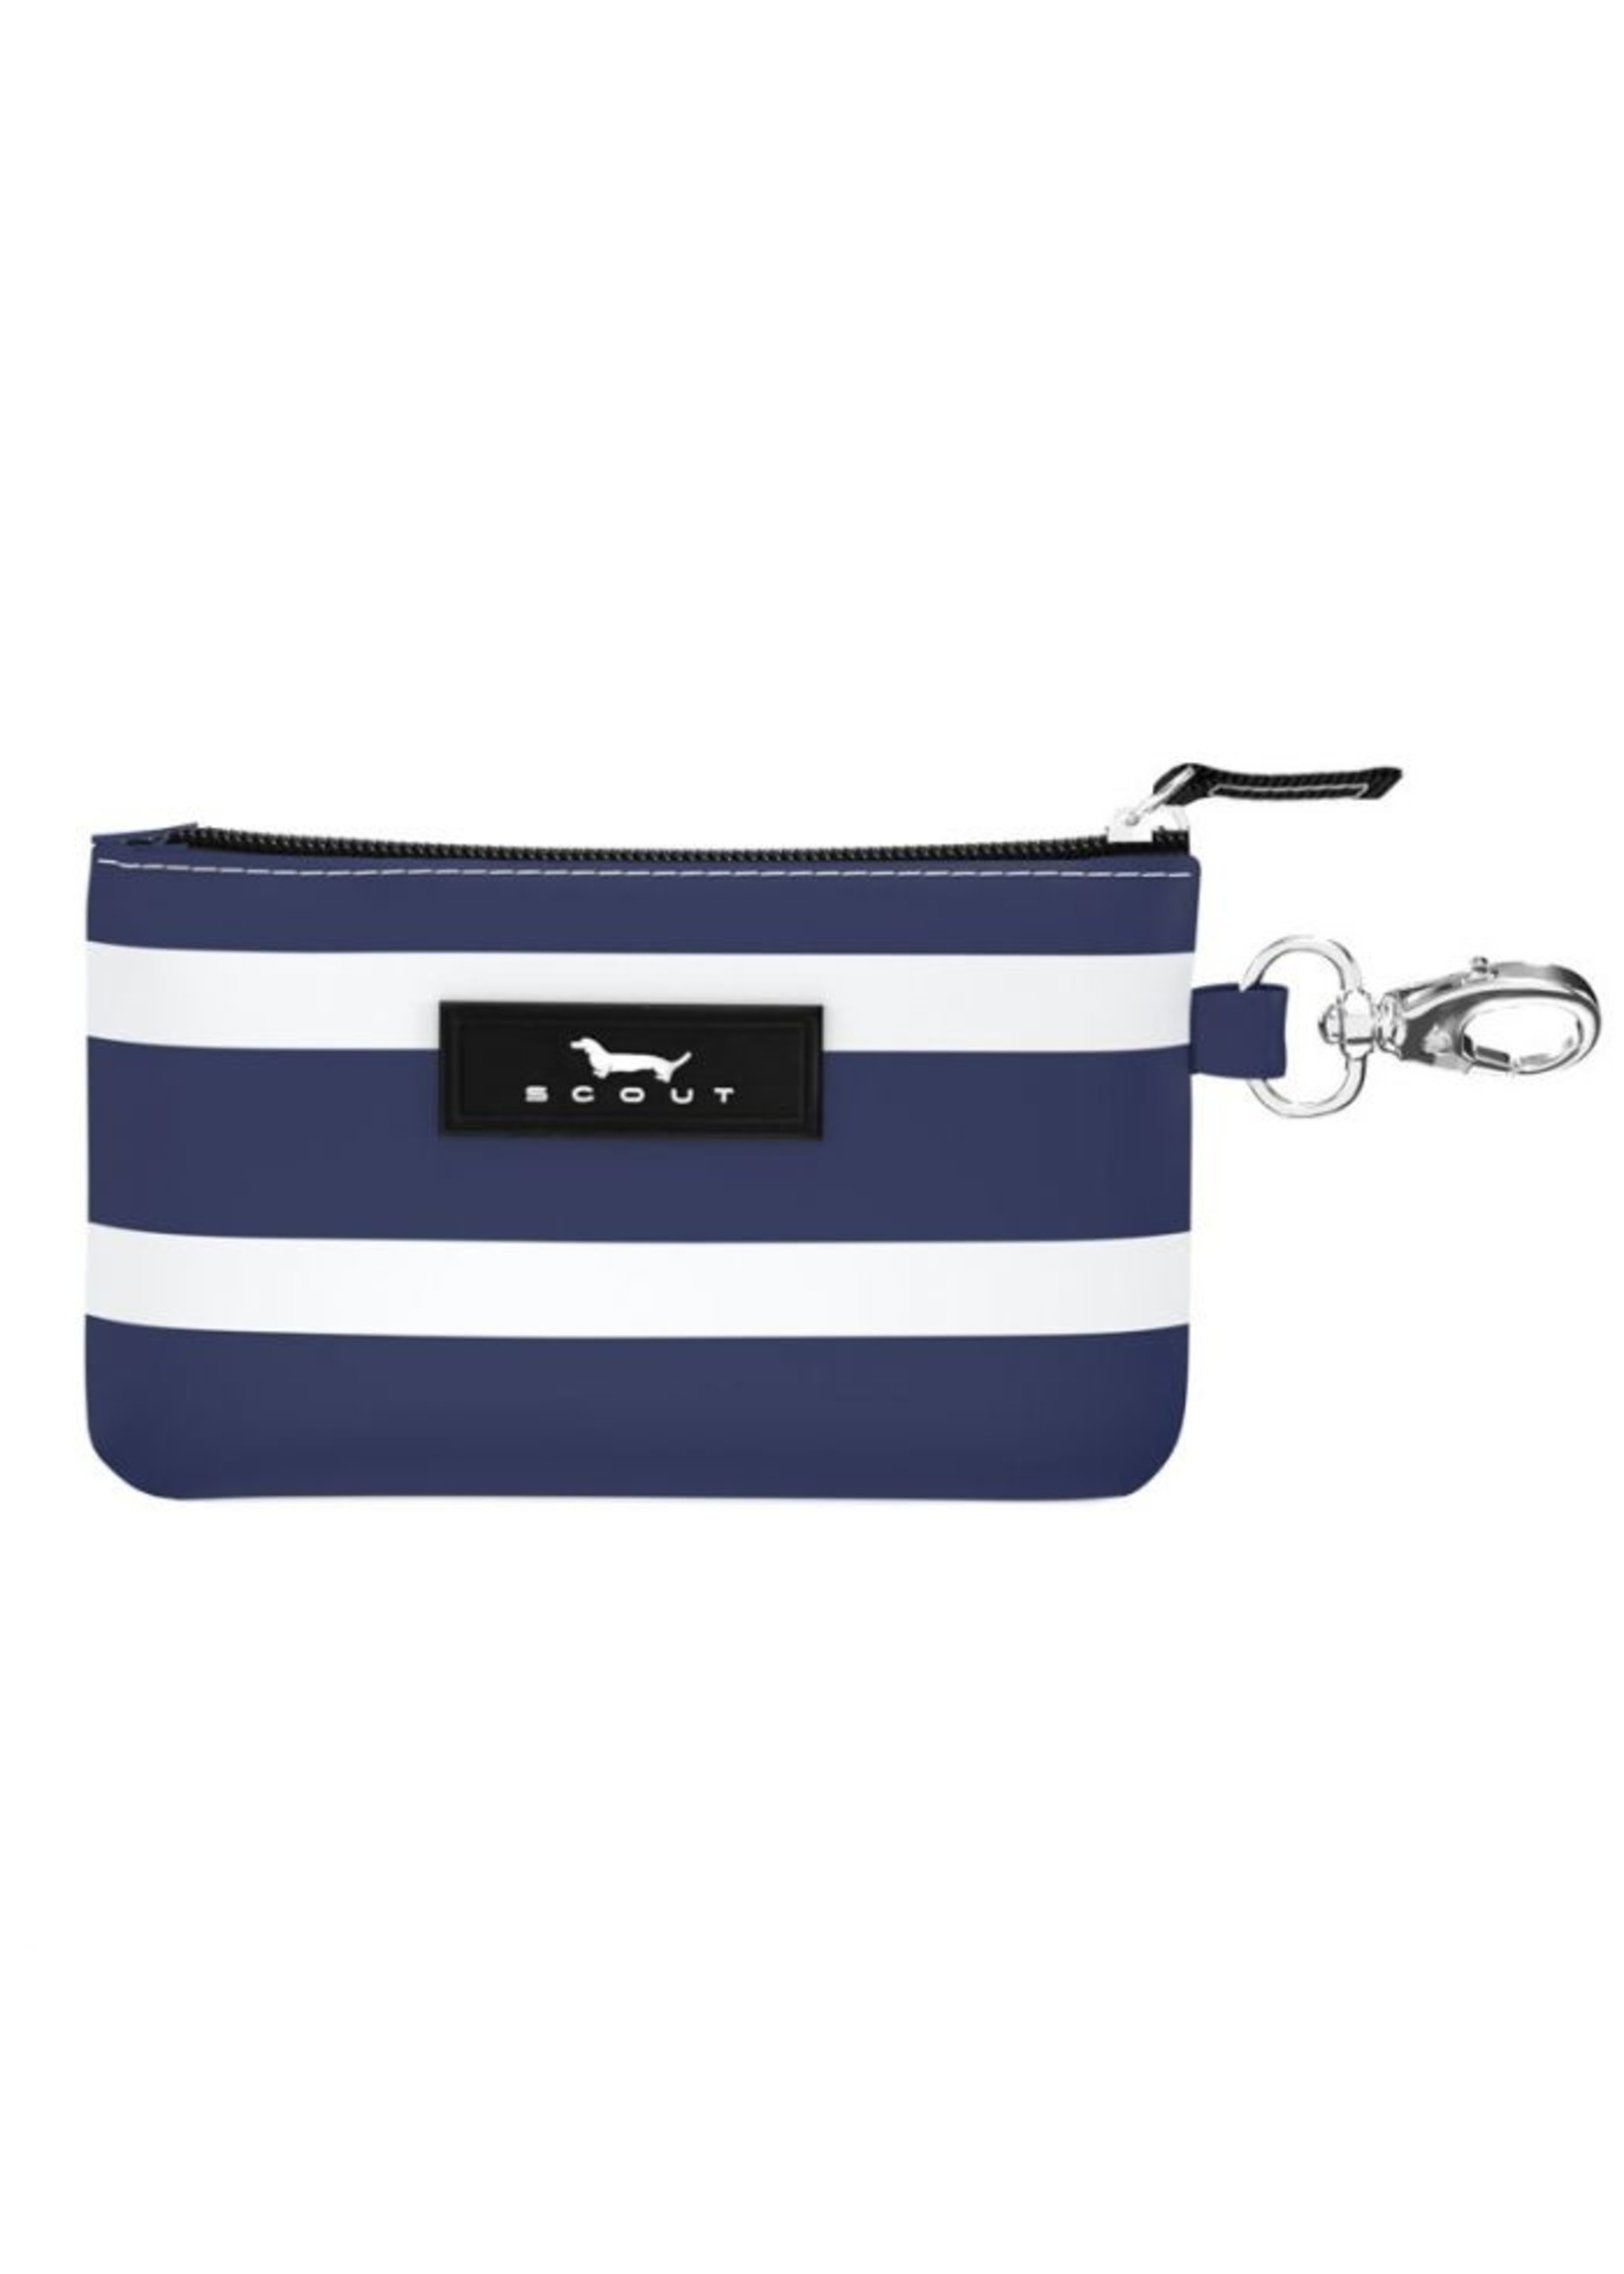 scout by bungalow Scout IDKase Nantucket Navy